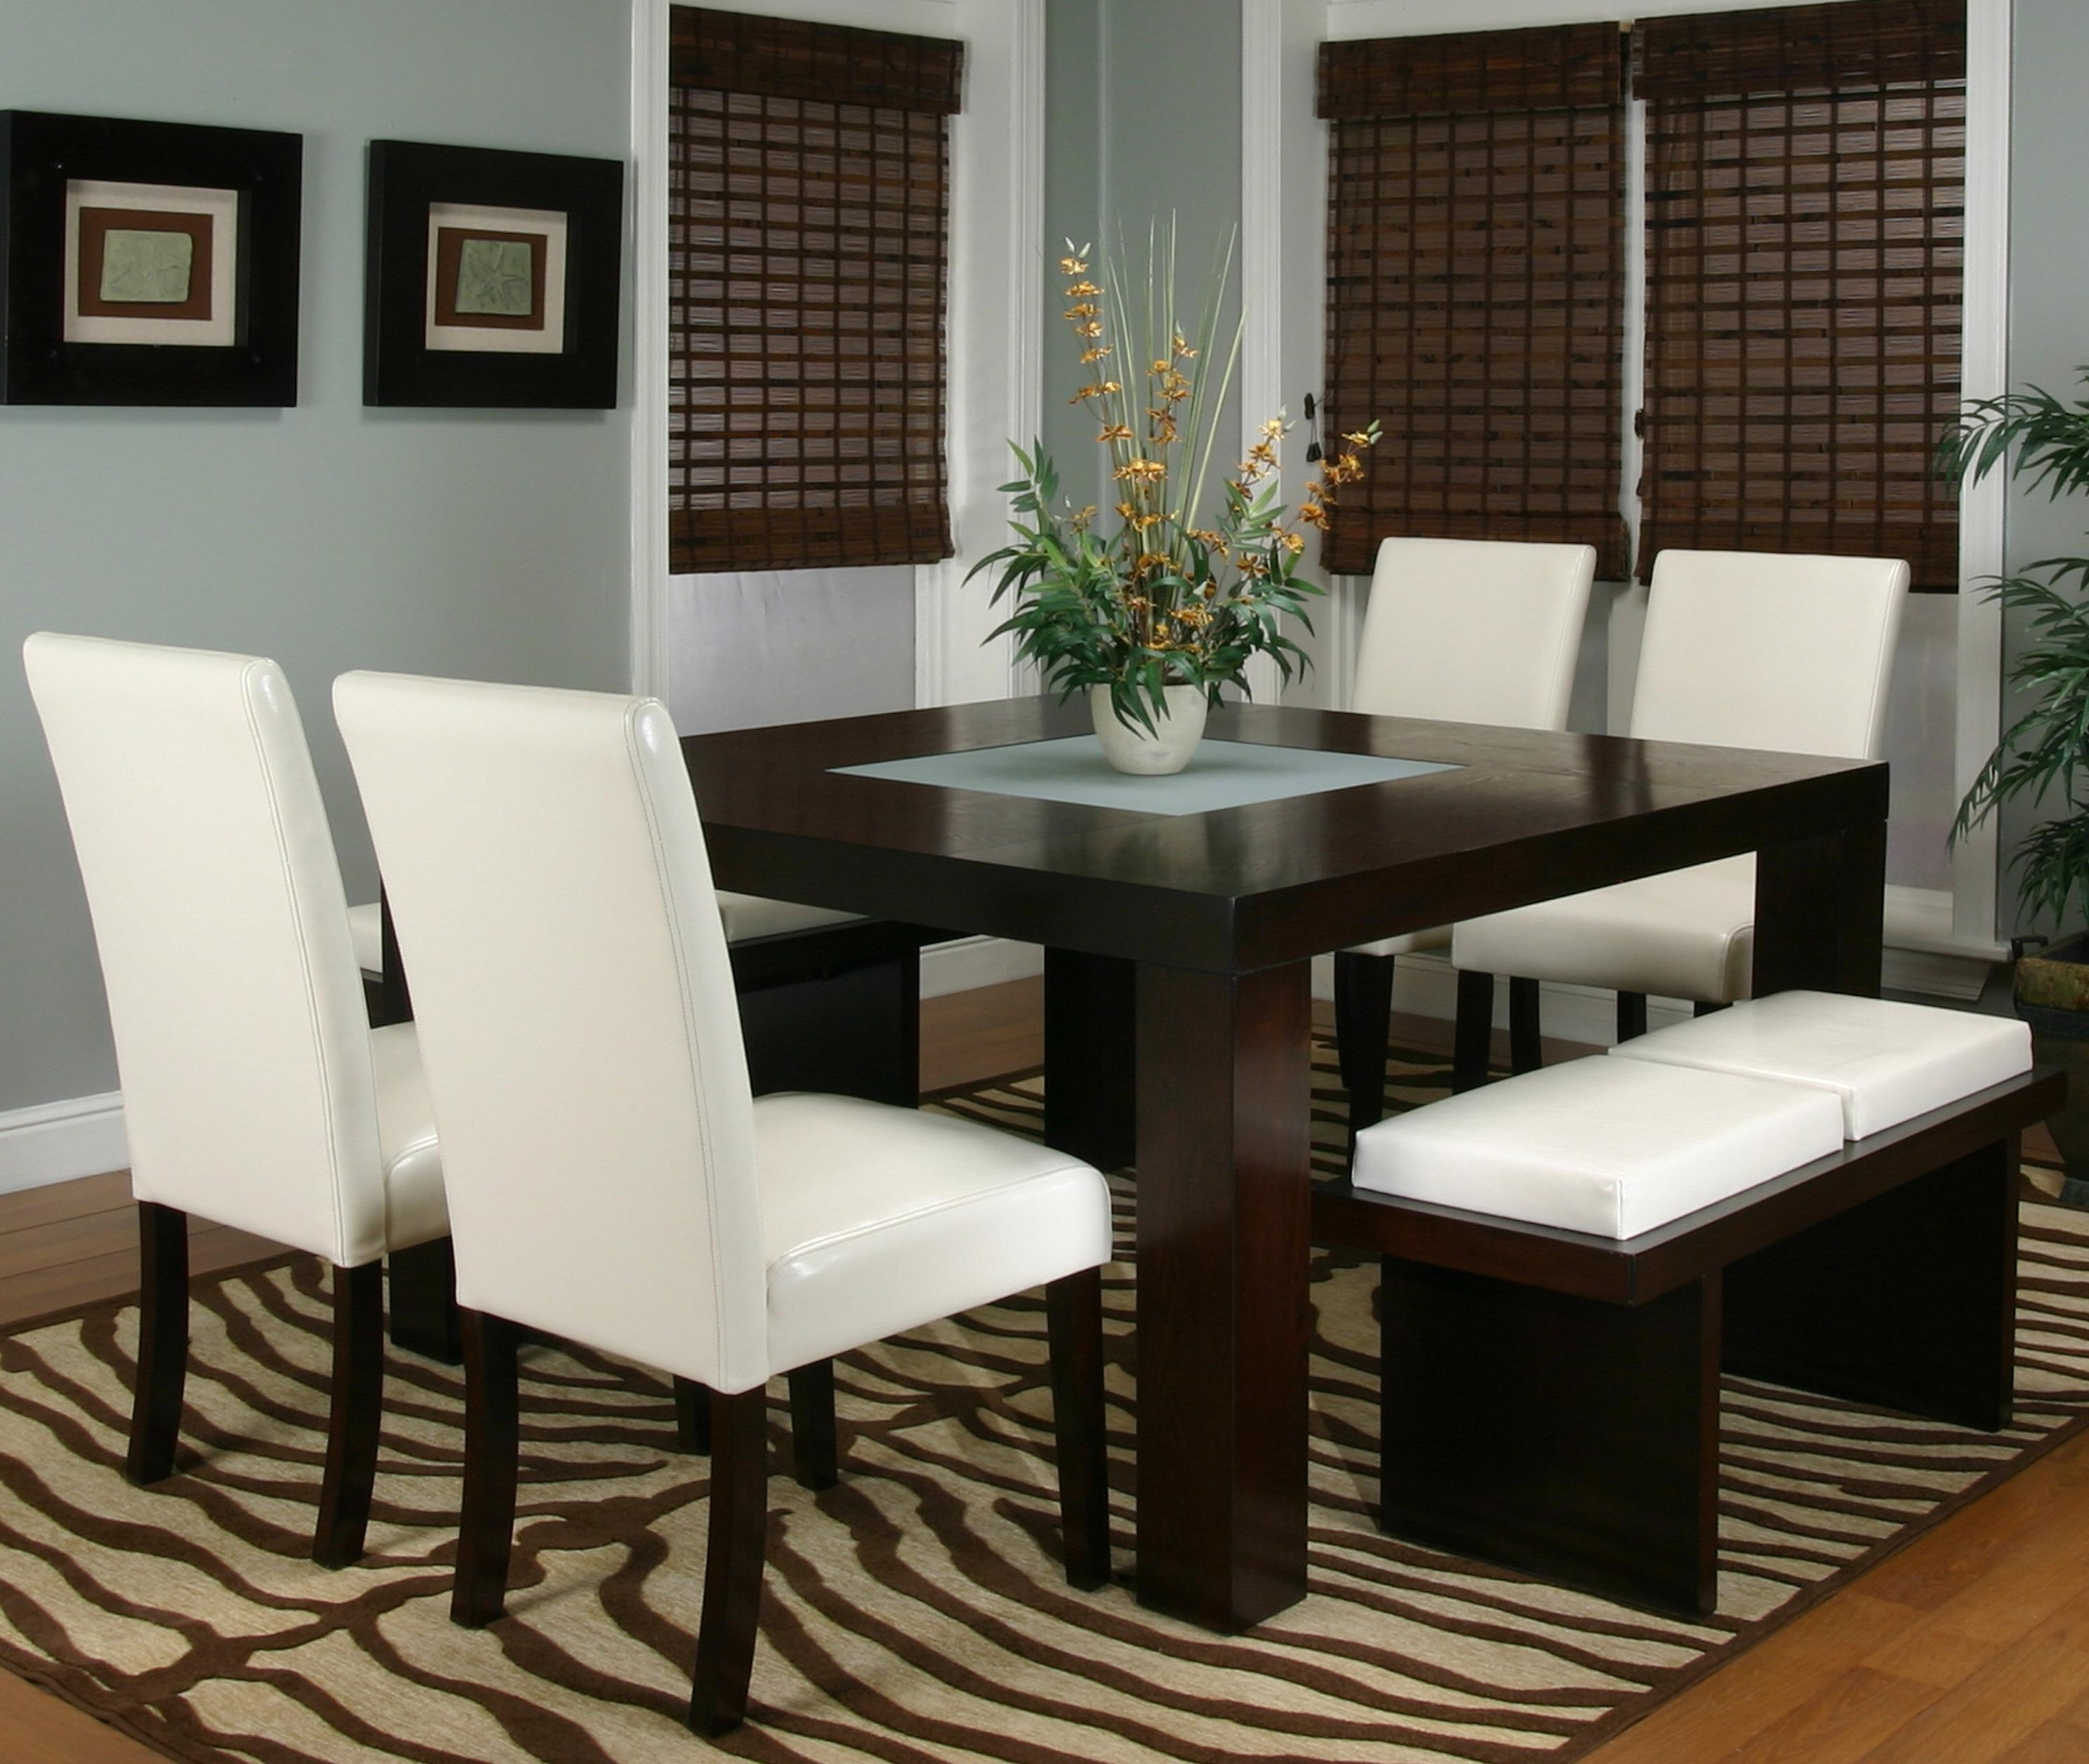 Smoked Glass Dining Tables And Chairs Inside Most Up To Date Seven Piece Dining Setcramco, Inc (View 12 of 25)